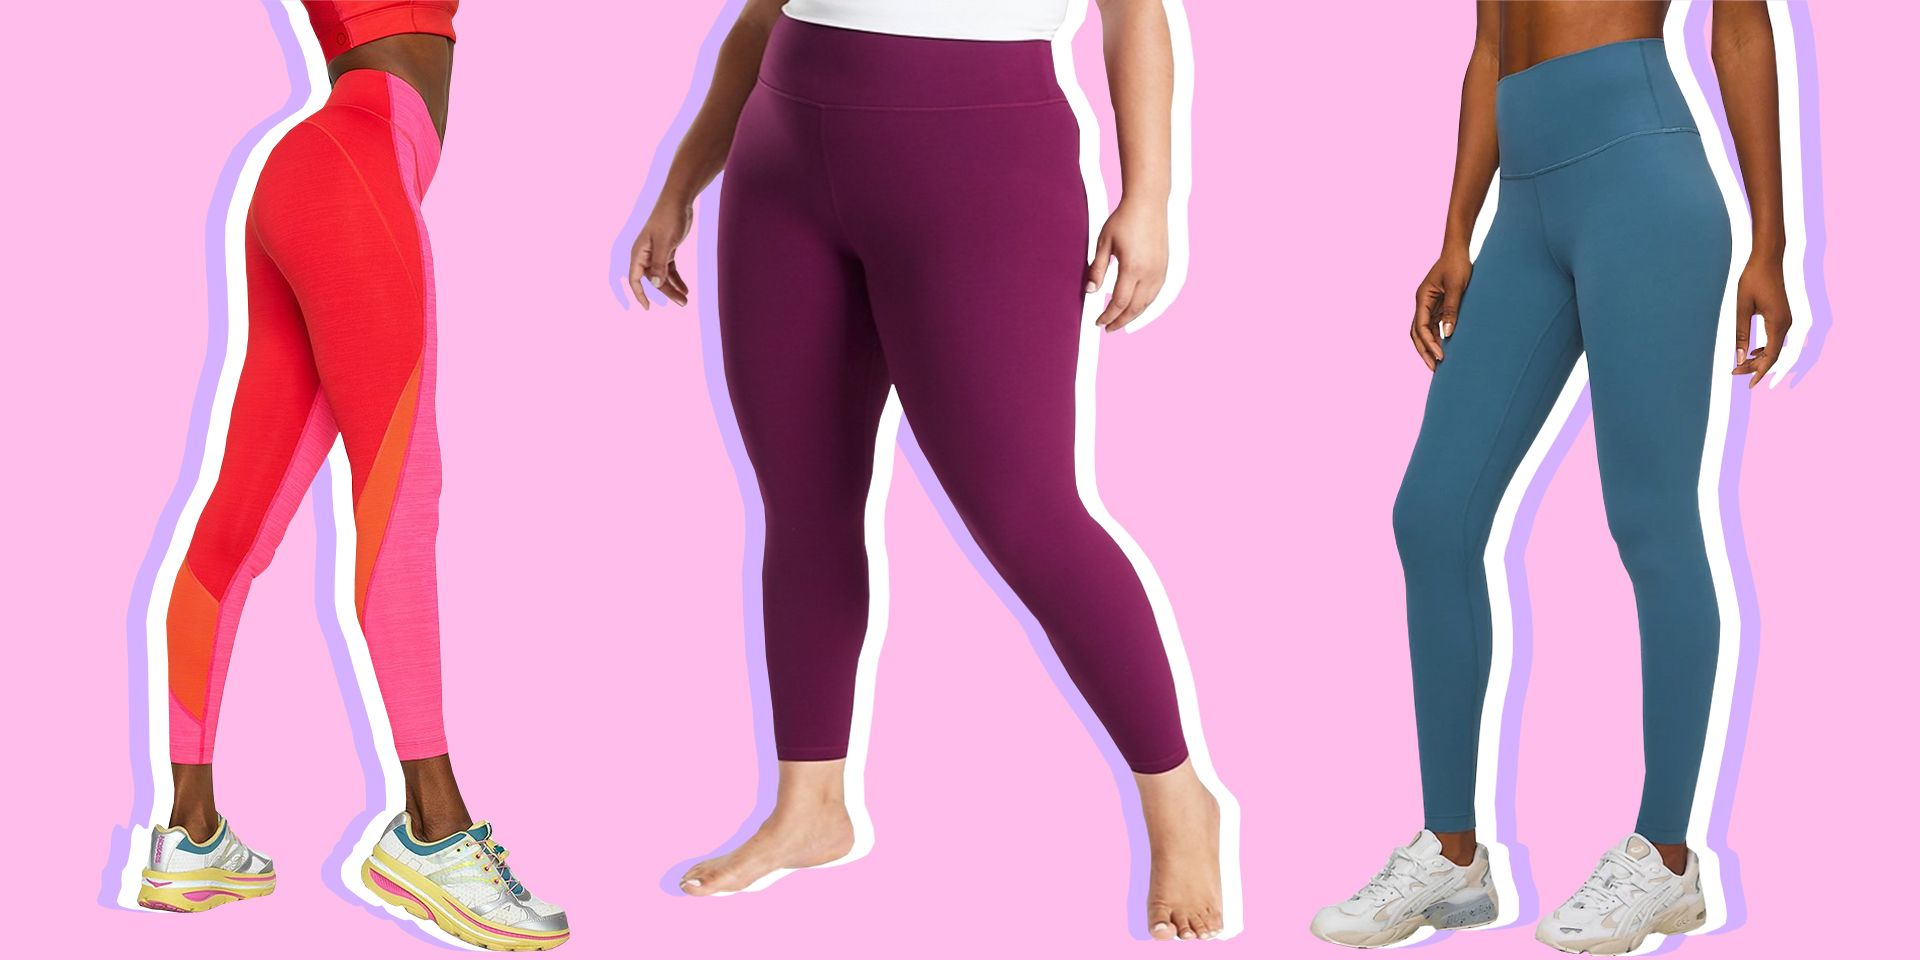 10 Best Leggings Brands That Will Make Your Butt Look Like an 11/10